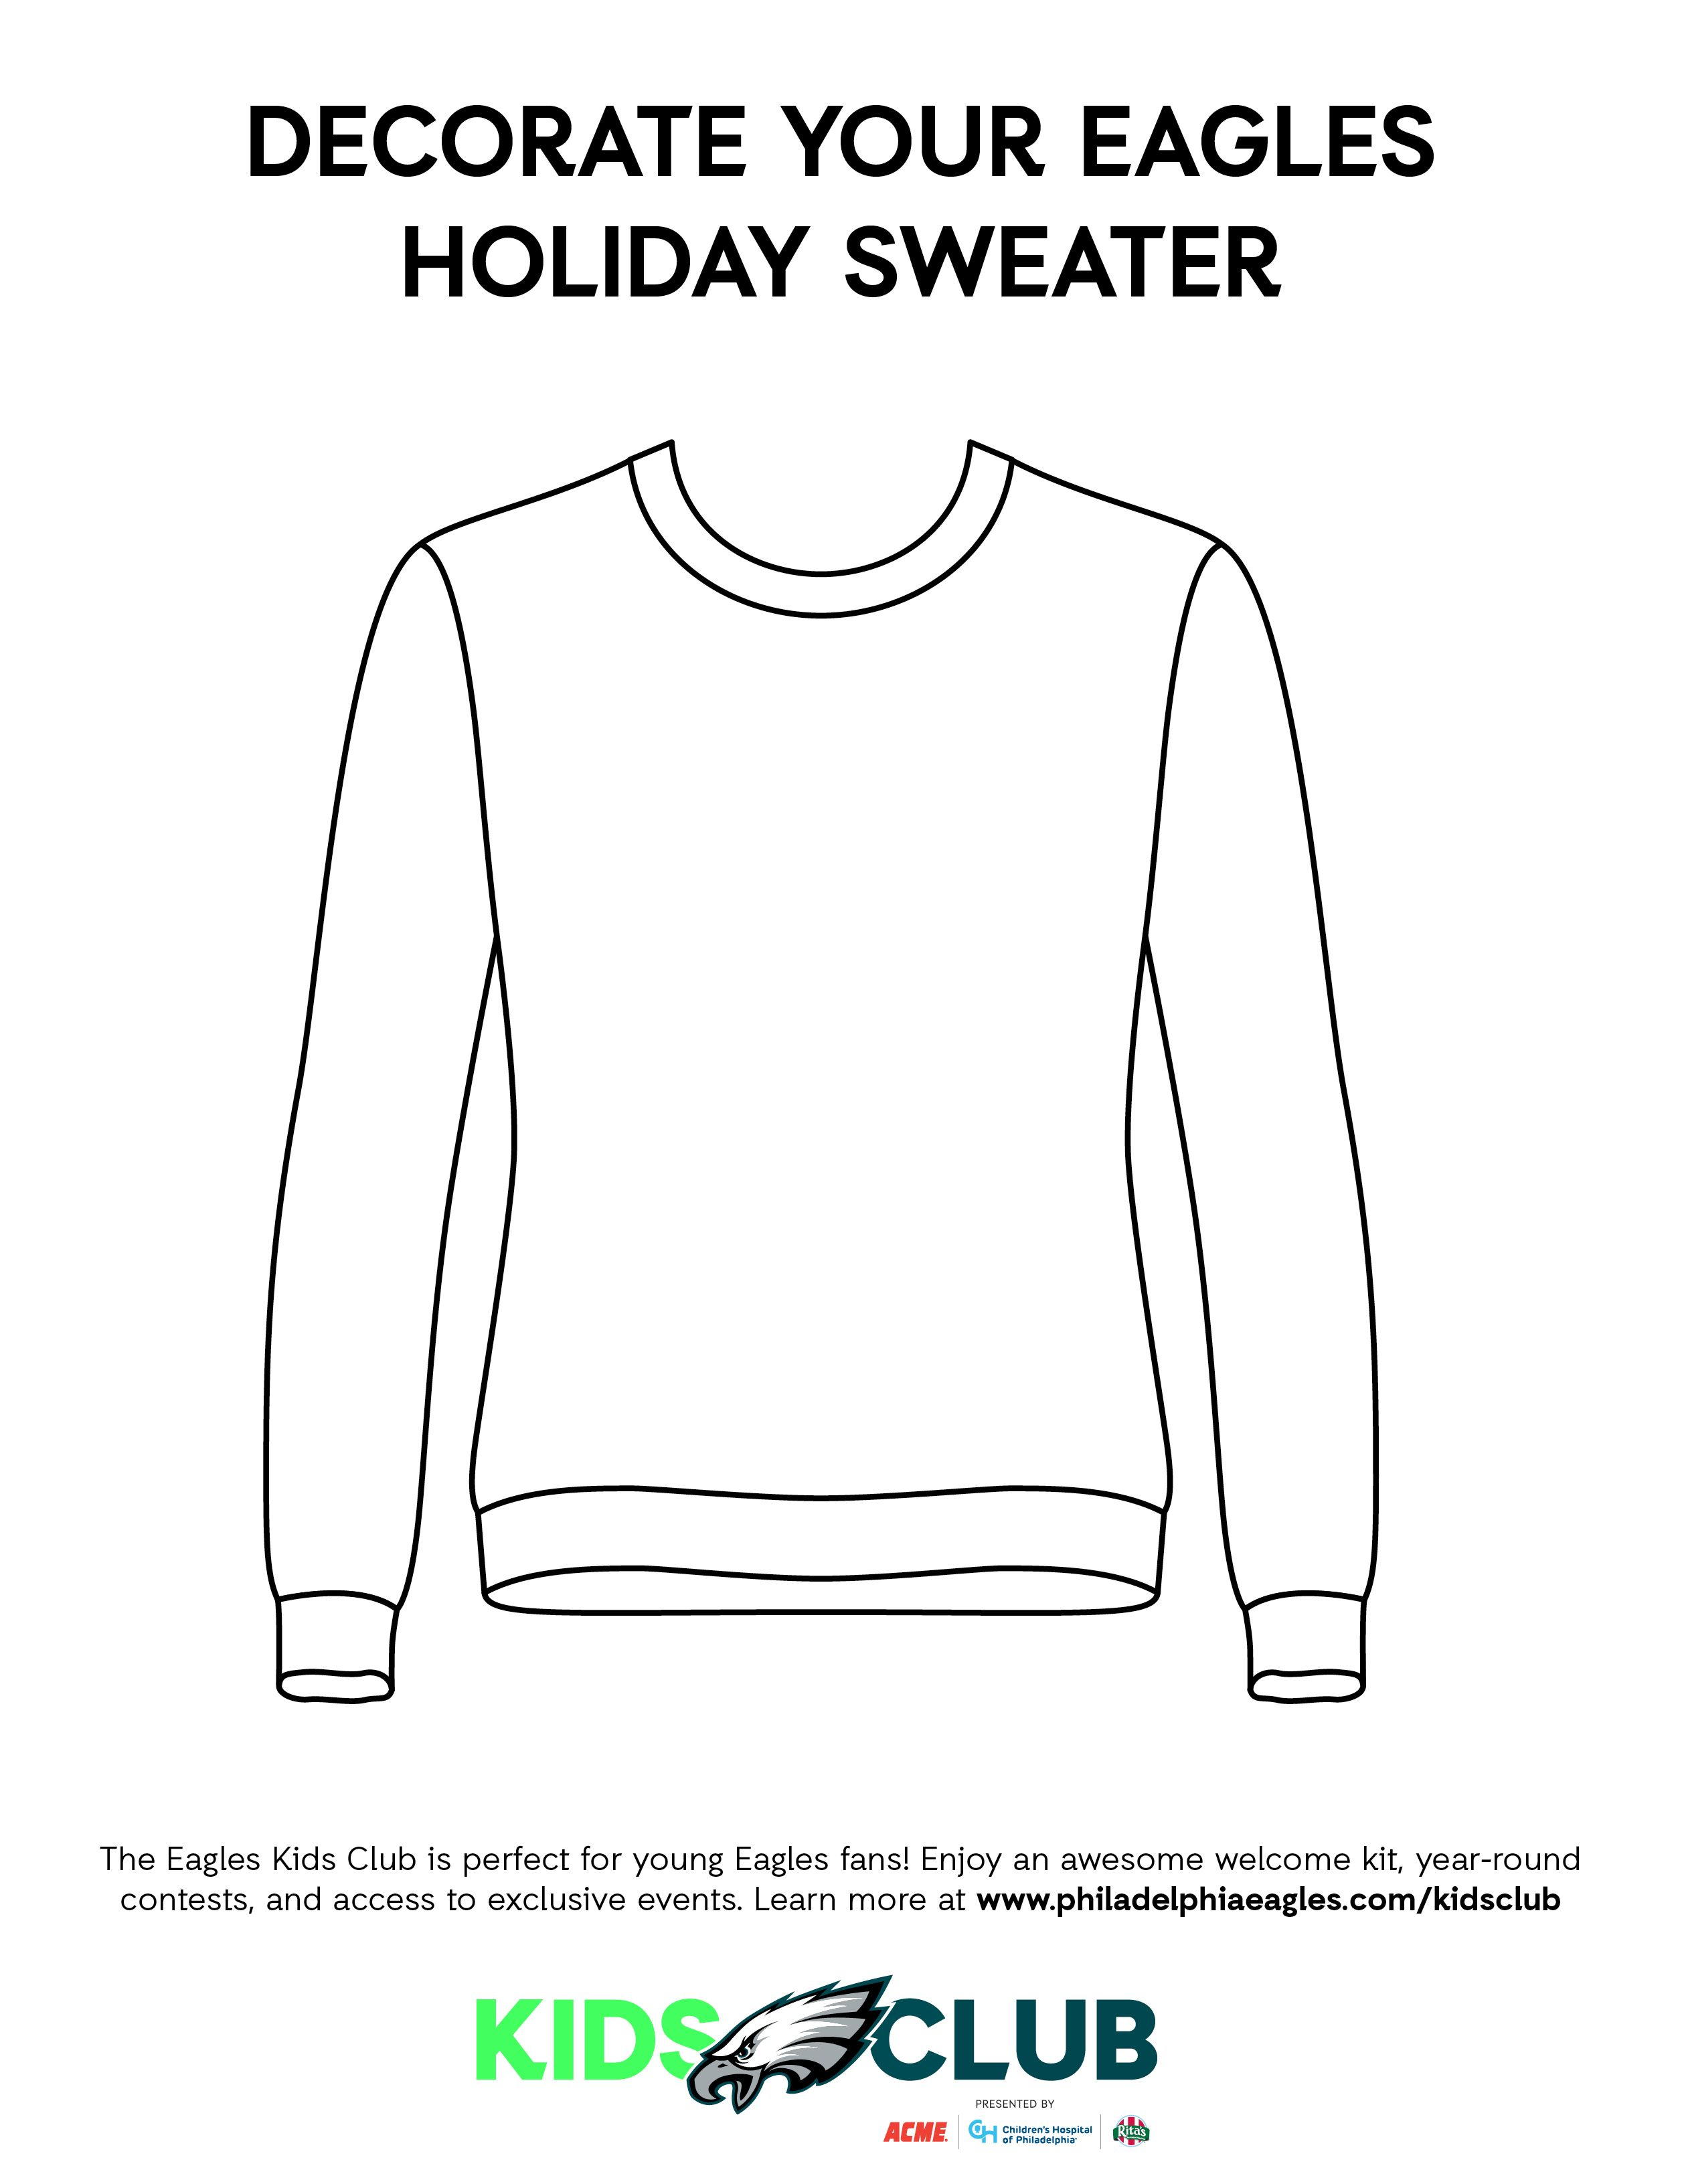 Decorate Holiday Sweater